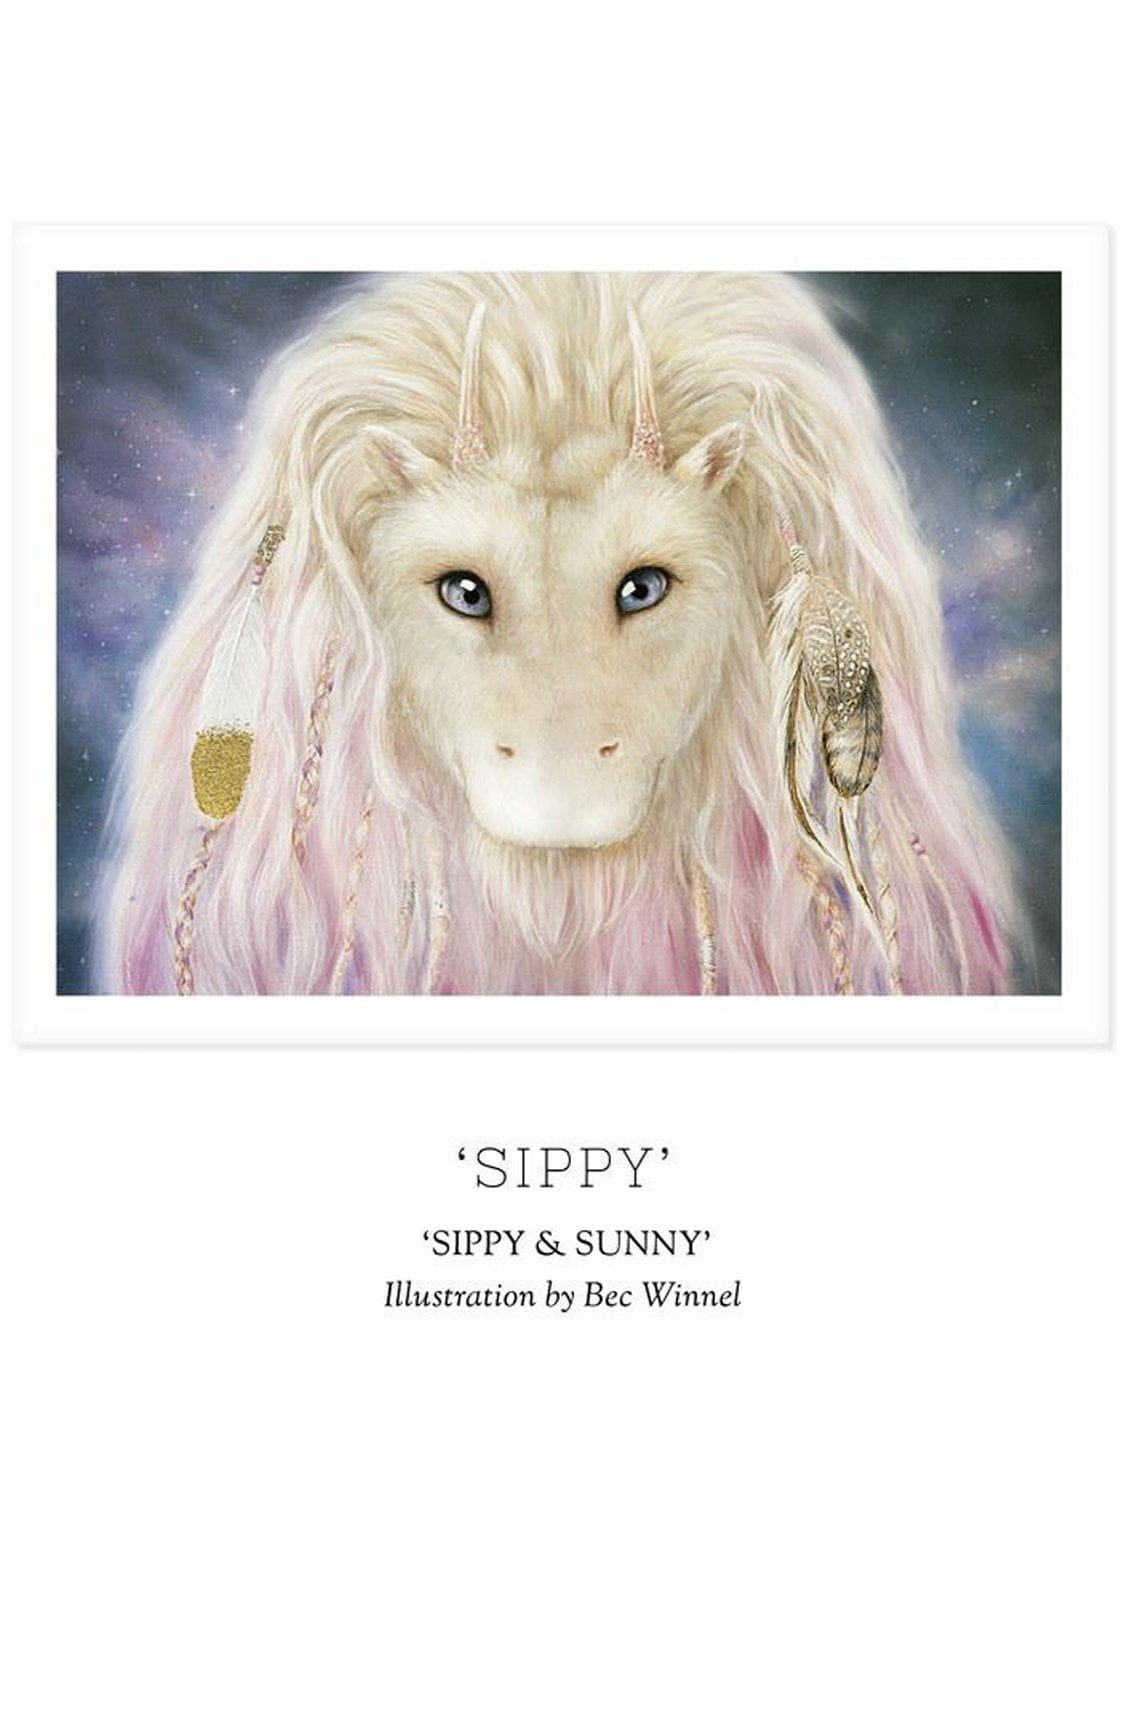 POEM FOR SIPPY BOOK